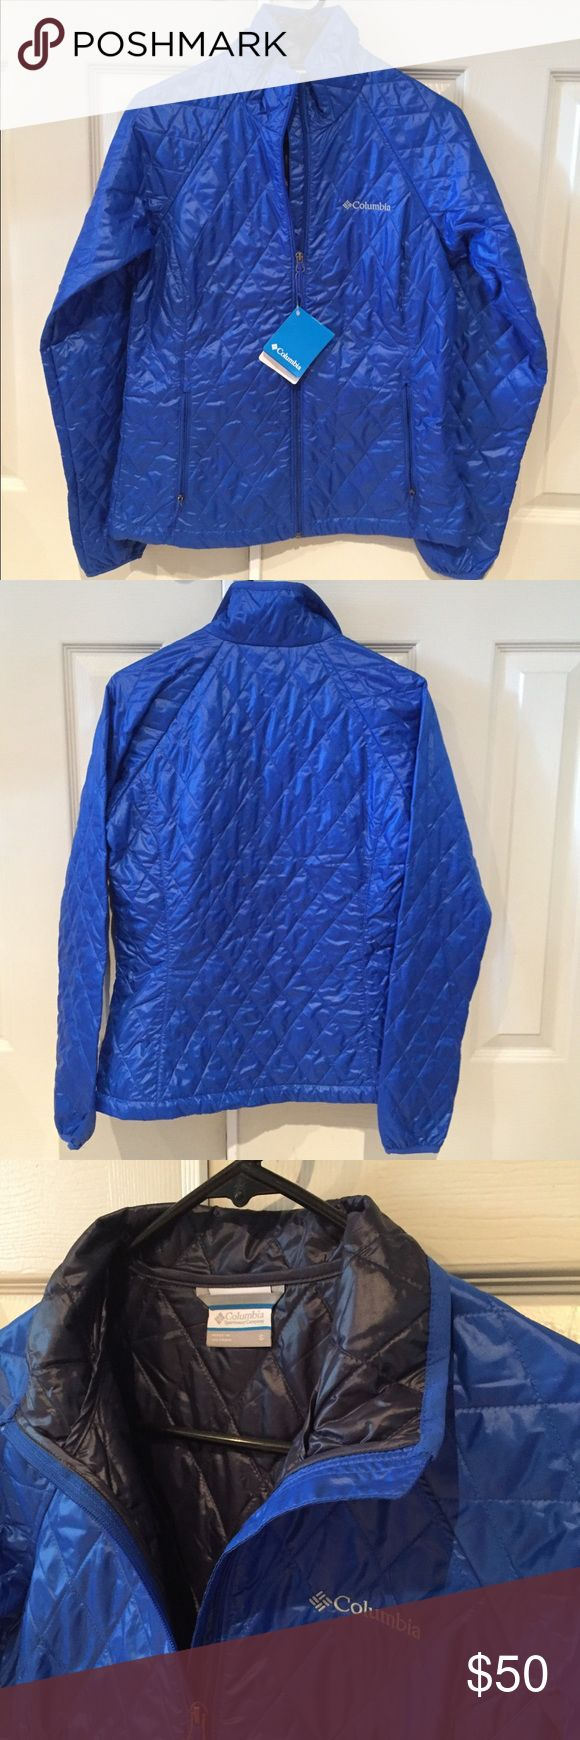 Columbia women's synthetic down jacket NWT Brand new Women's light weight warm jacket  Size S Tapered with elastic at hem to tighten for warmth. Very versatile, great for travel and cold weather. See photos for fabric & sizing Comment any questions   Make an offer ☺️ Columbia Jackets & Coats Puffers